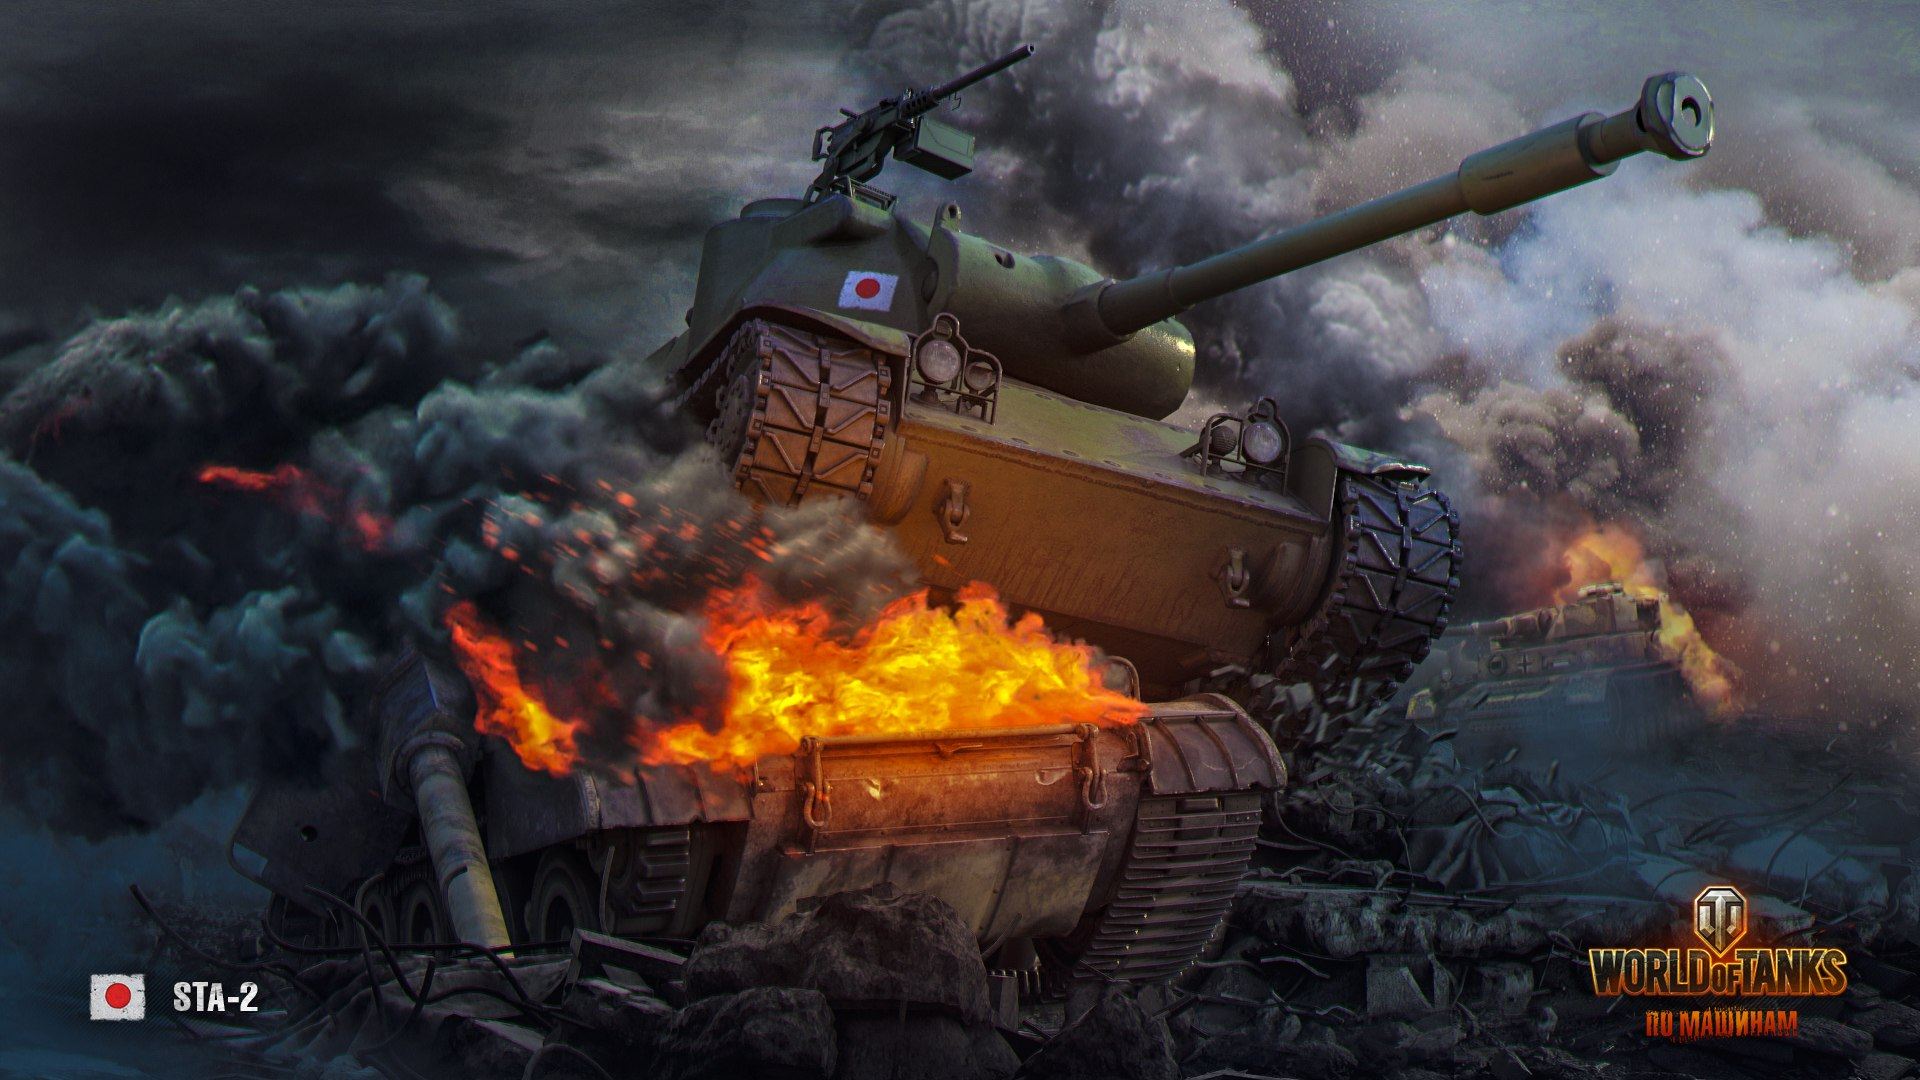 wot wallpapers by marm